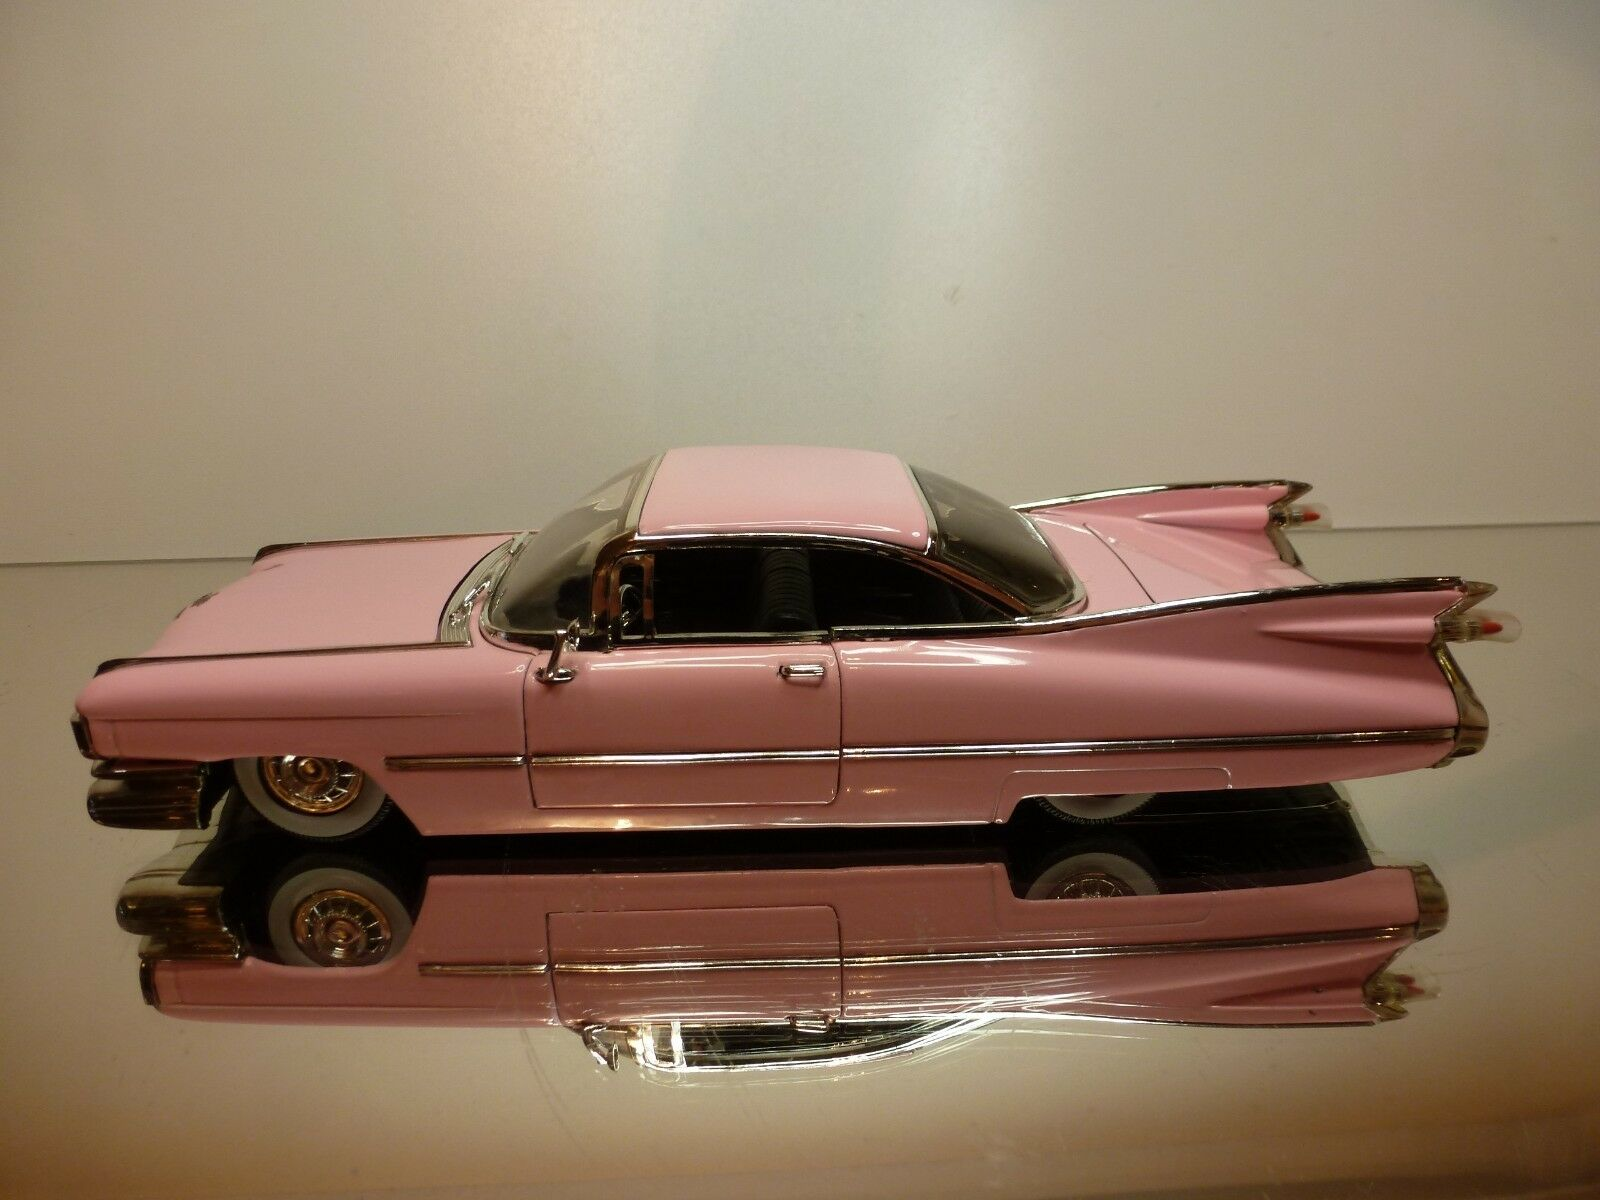 JADA JADA JADA TOYS CADILLAC DEVILLE 1958 - PINK 1 24 - VERY GOOD CONDITION b3e0c7